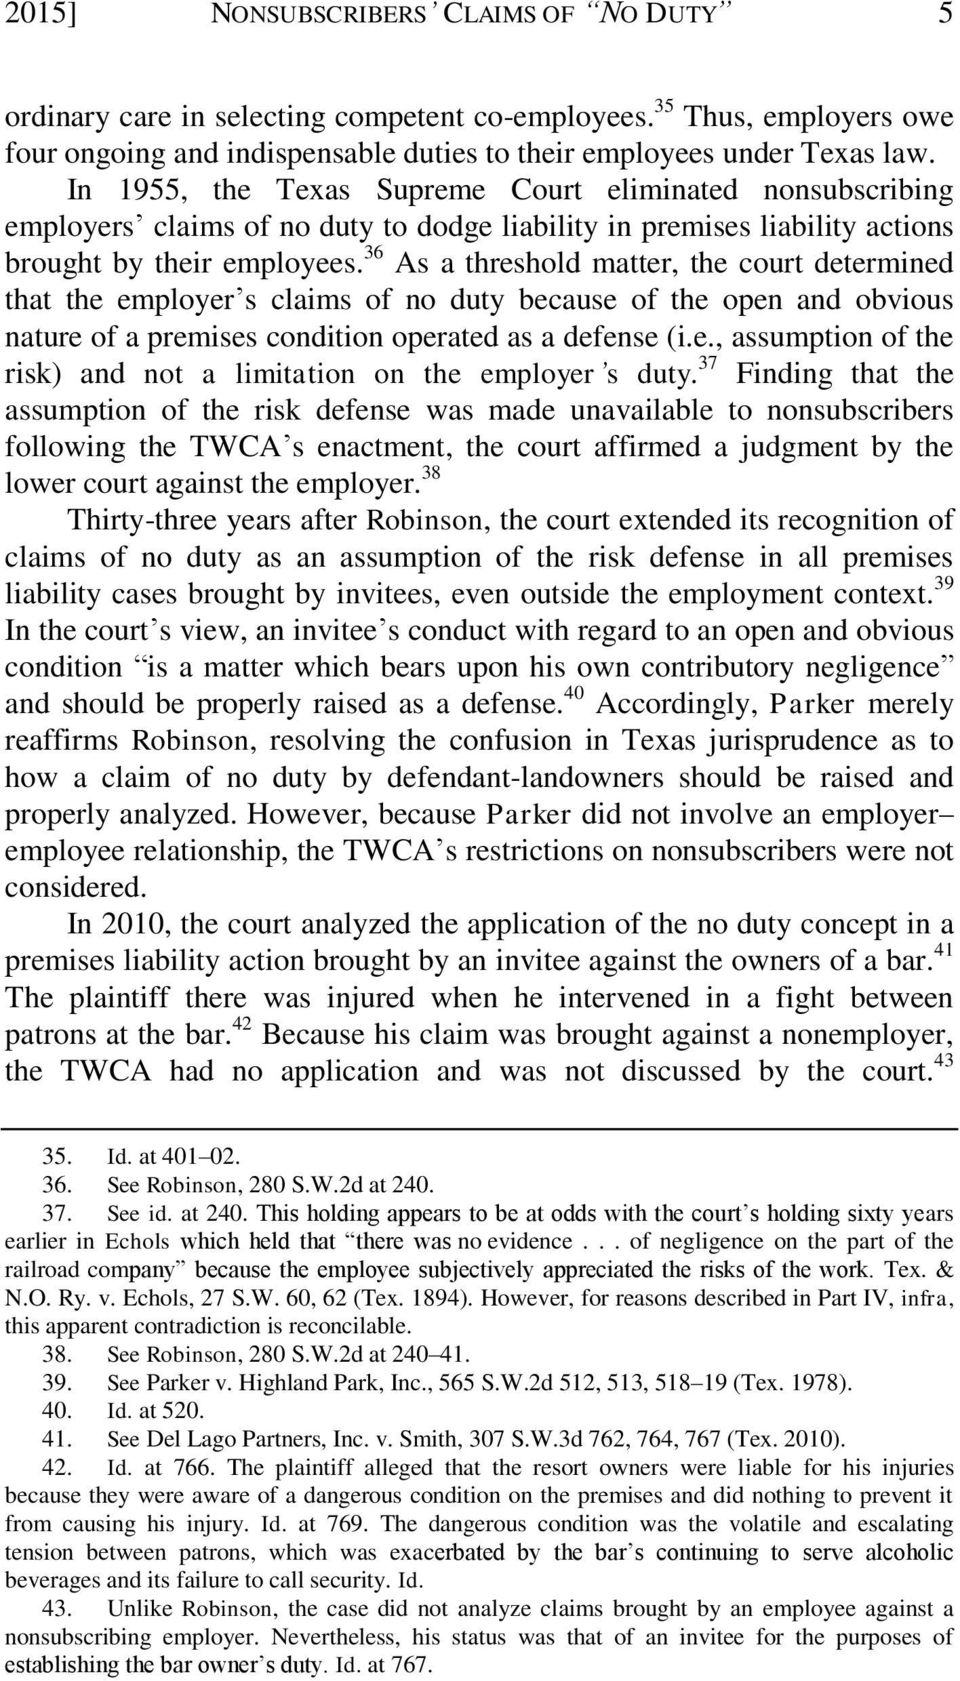 36 As a threshold matter, the court determined that the employer s claims of no duty because of the open and obvious nature of a premises condition operated as a defense (i.e., assumption of the risk) and not a limitation on the employer s duty.